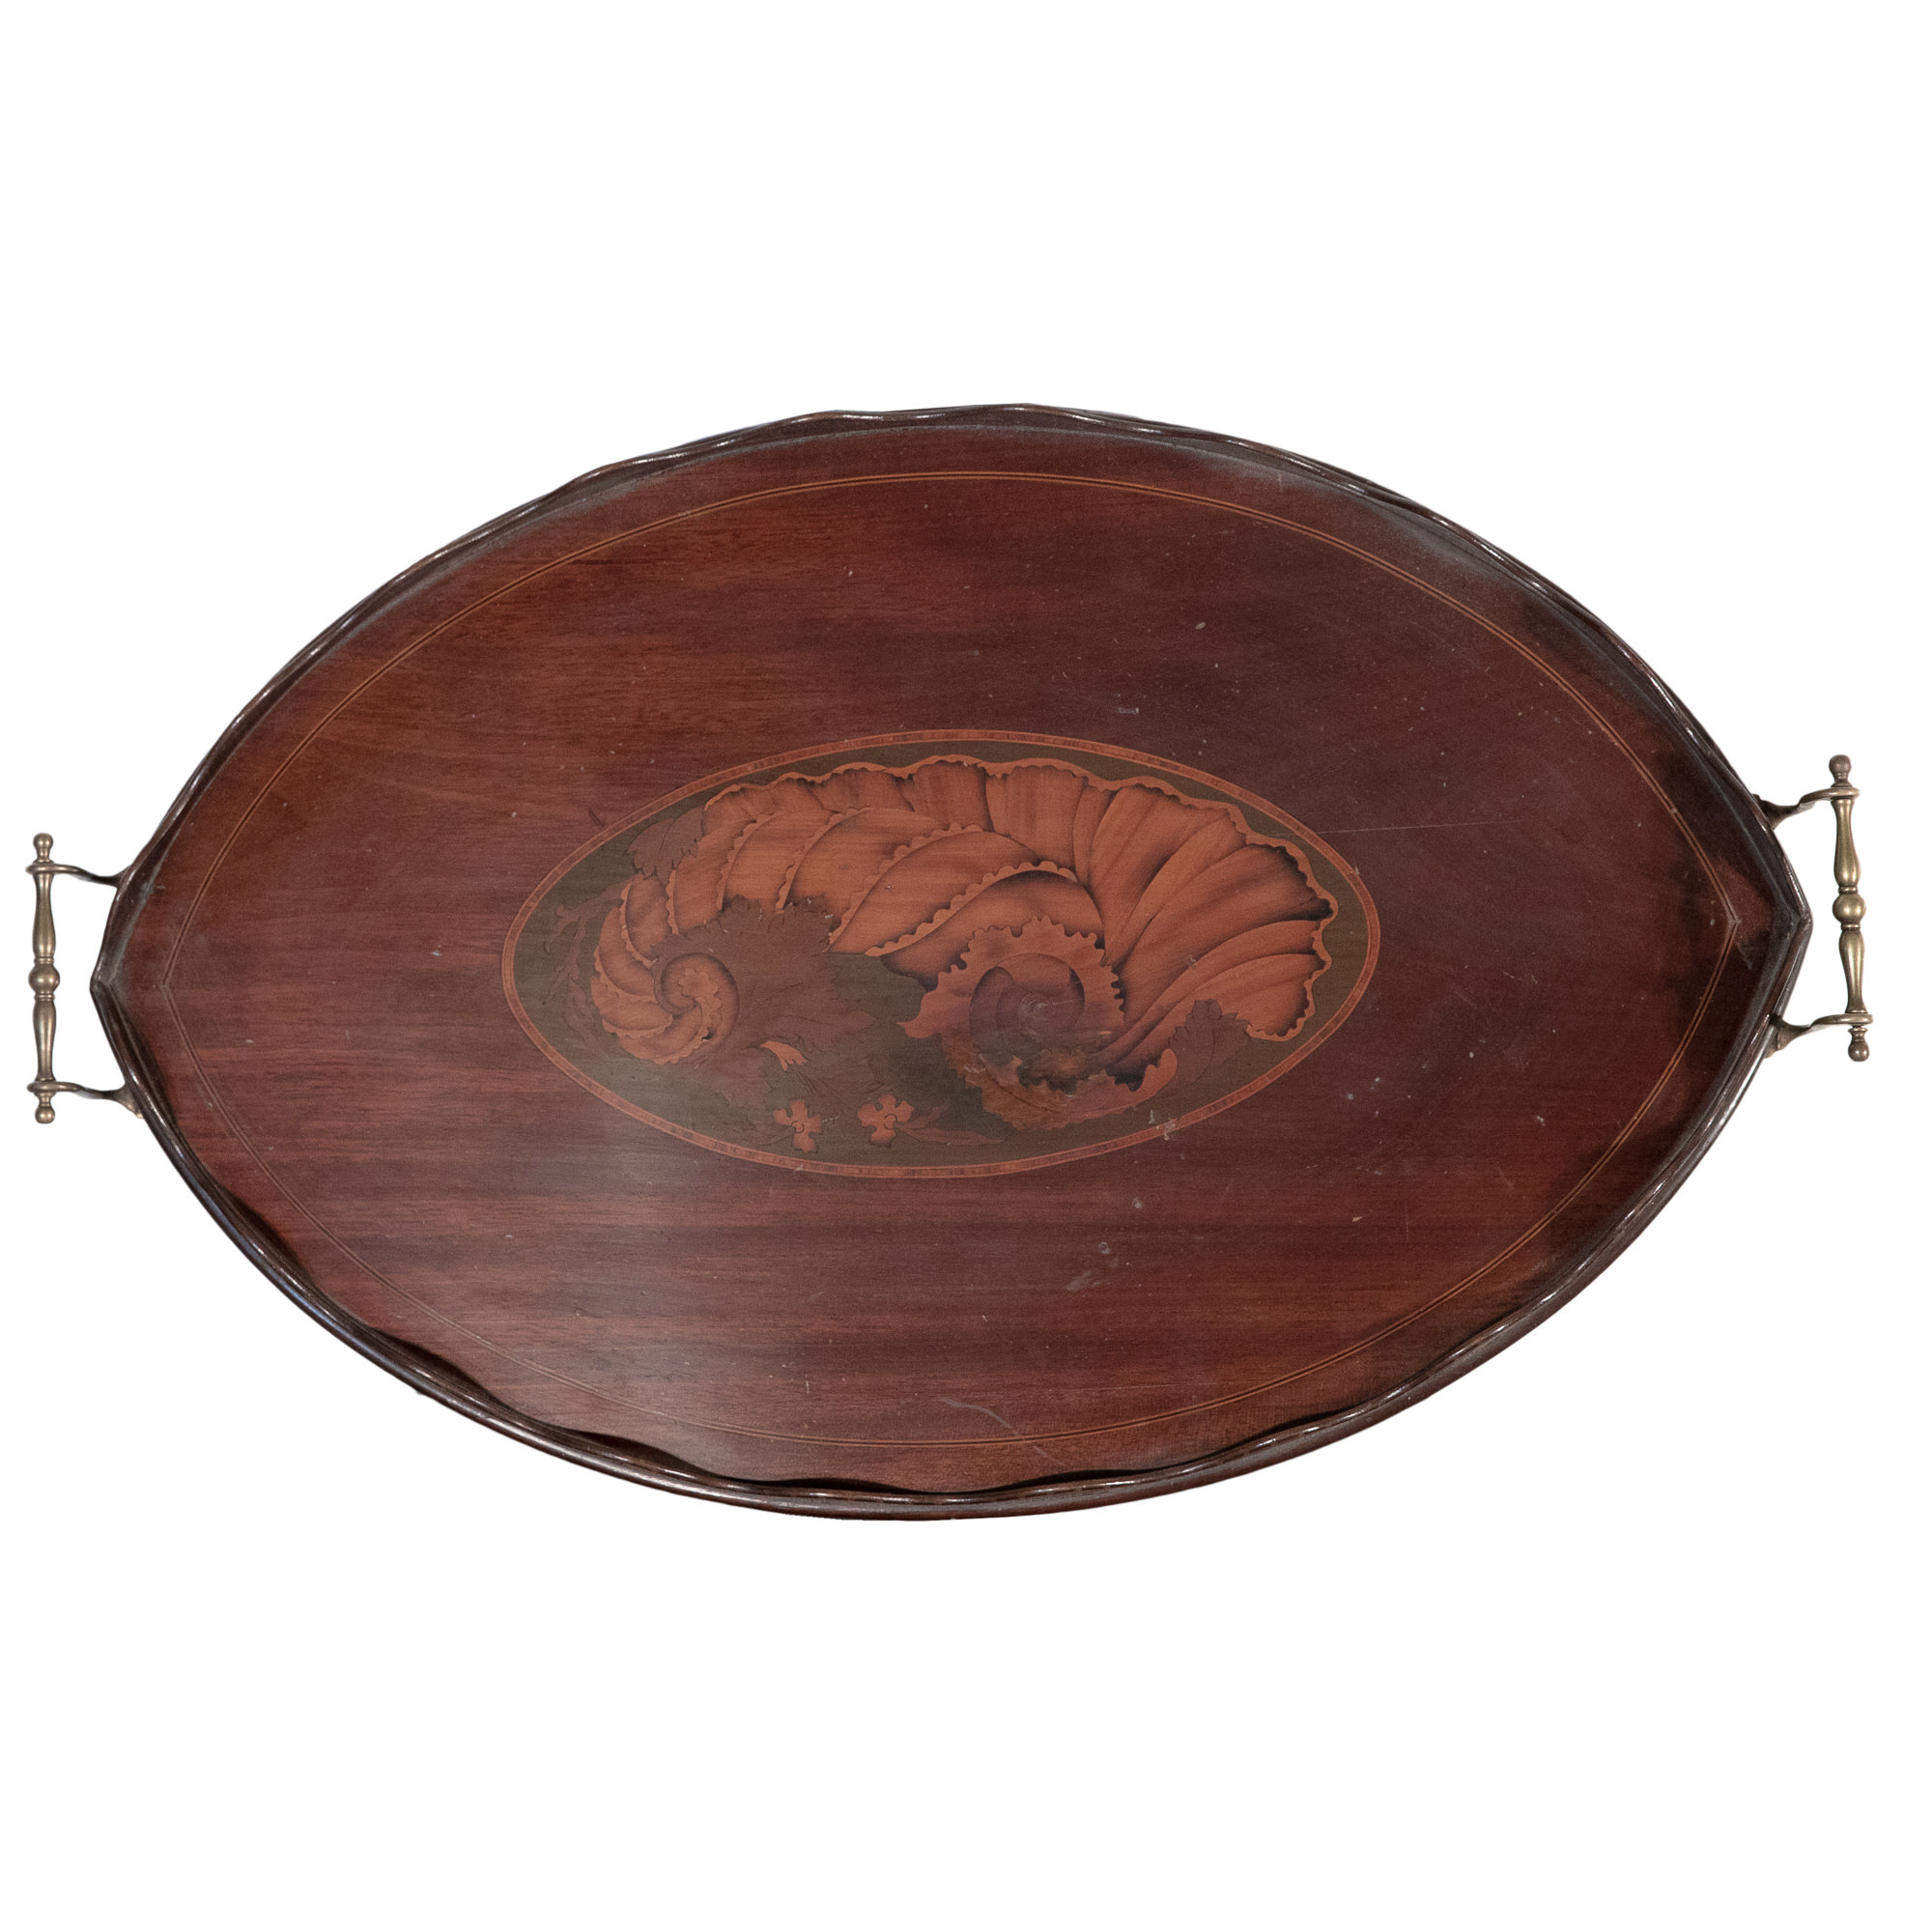 'George III Ebony and Boxwood Strung Mahogany Butlers Tray with Inlaid Large Shell Motif Circa 1800'